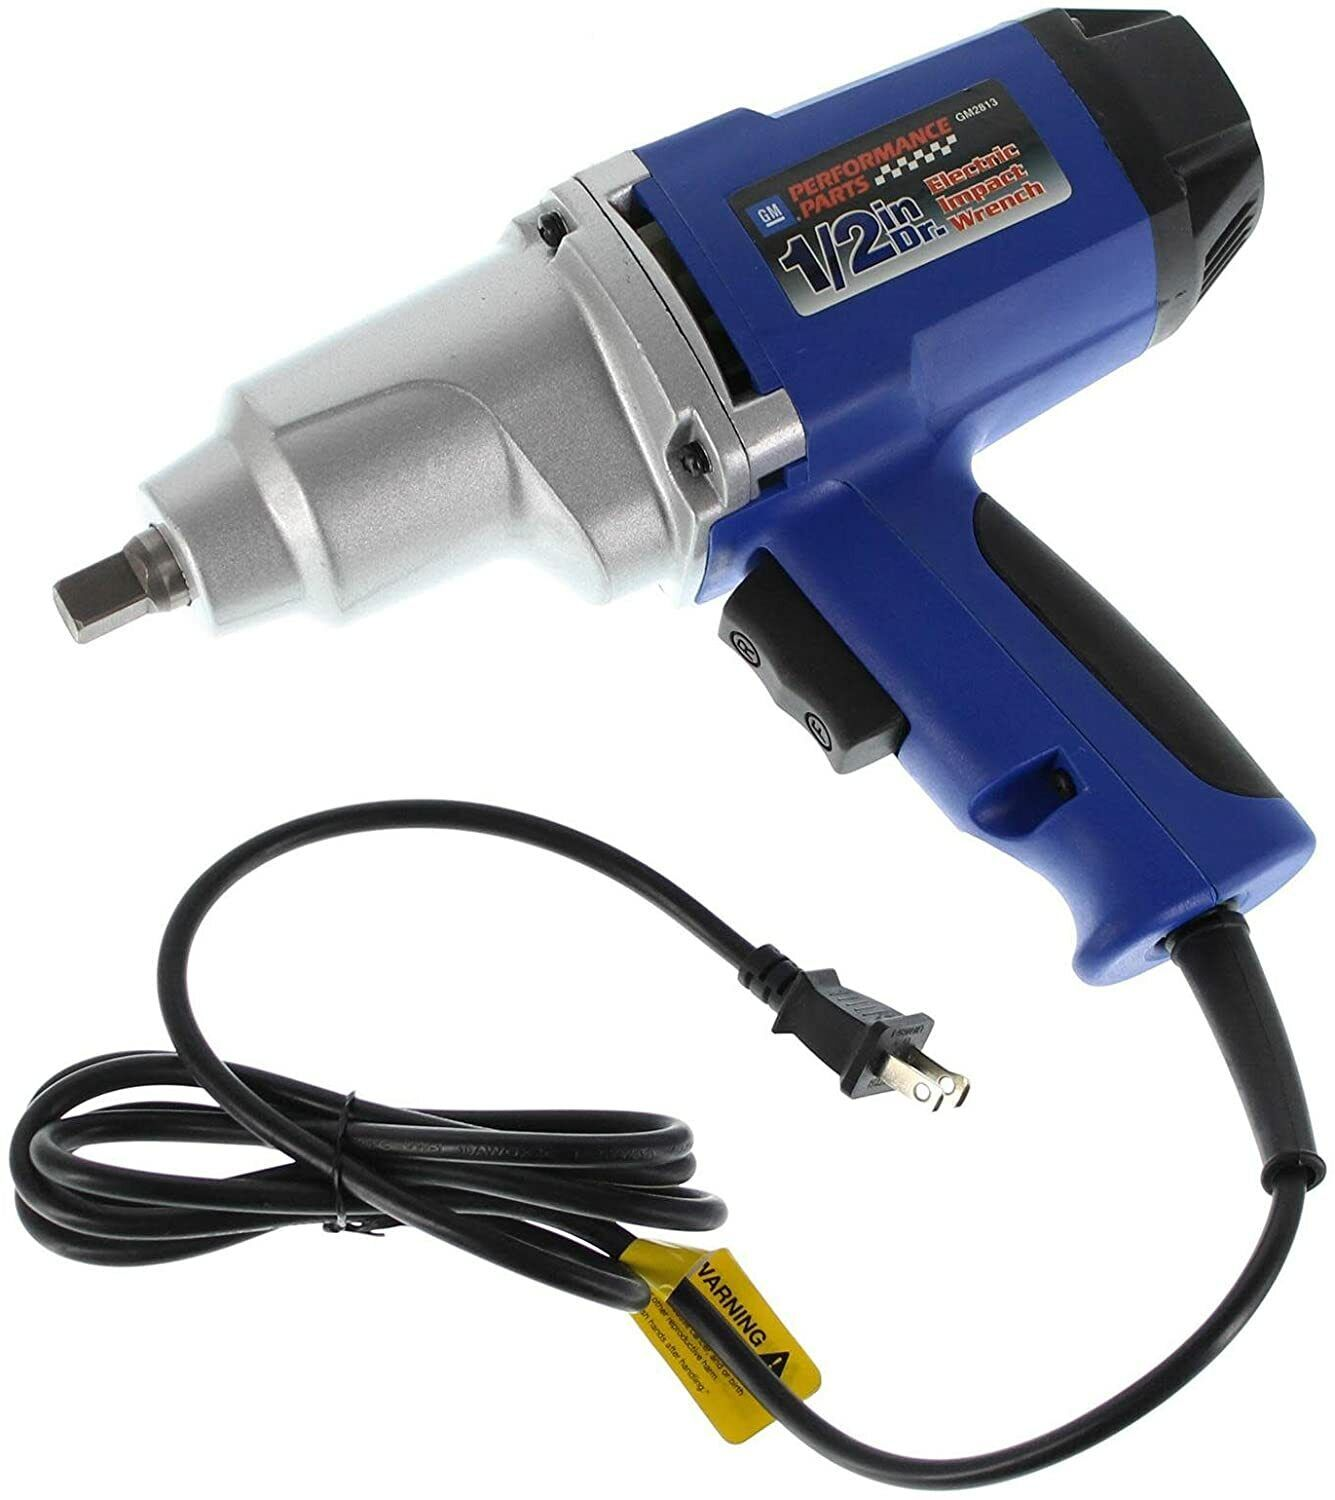 GM ELECTRIC IMPACT WRENCH 1/2″ DRIVE 120V Home & Garden